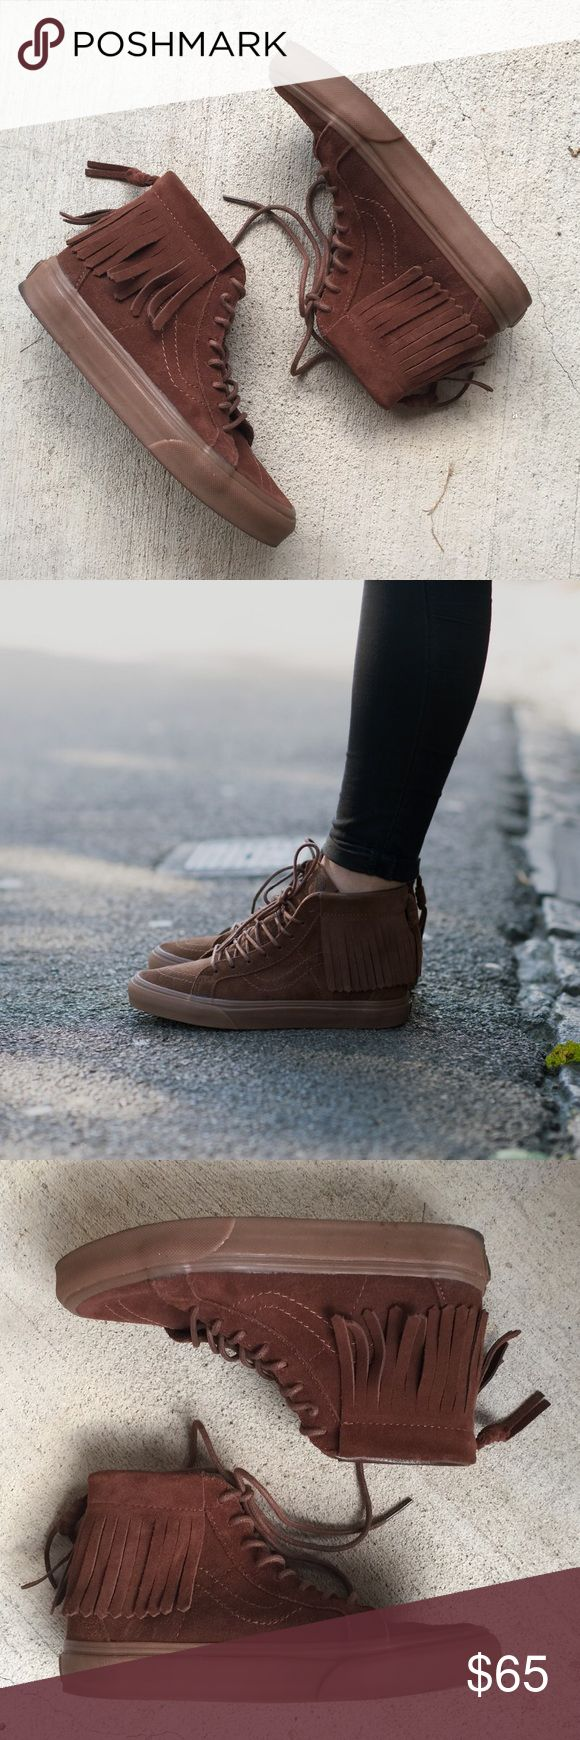 New Vans sk8 hi moc brown suede sneakers Brand new vans sk8 hi moc fringe high top lace up brown suede sneakers, women's 5.5. Retail for $80 at Vans, Urban Outfitters and Madewell. Perfect condition. Only selling because I need to downsize and I literally have these in every color! Vans Shoes Moccasins